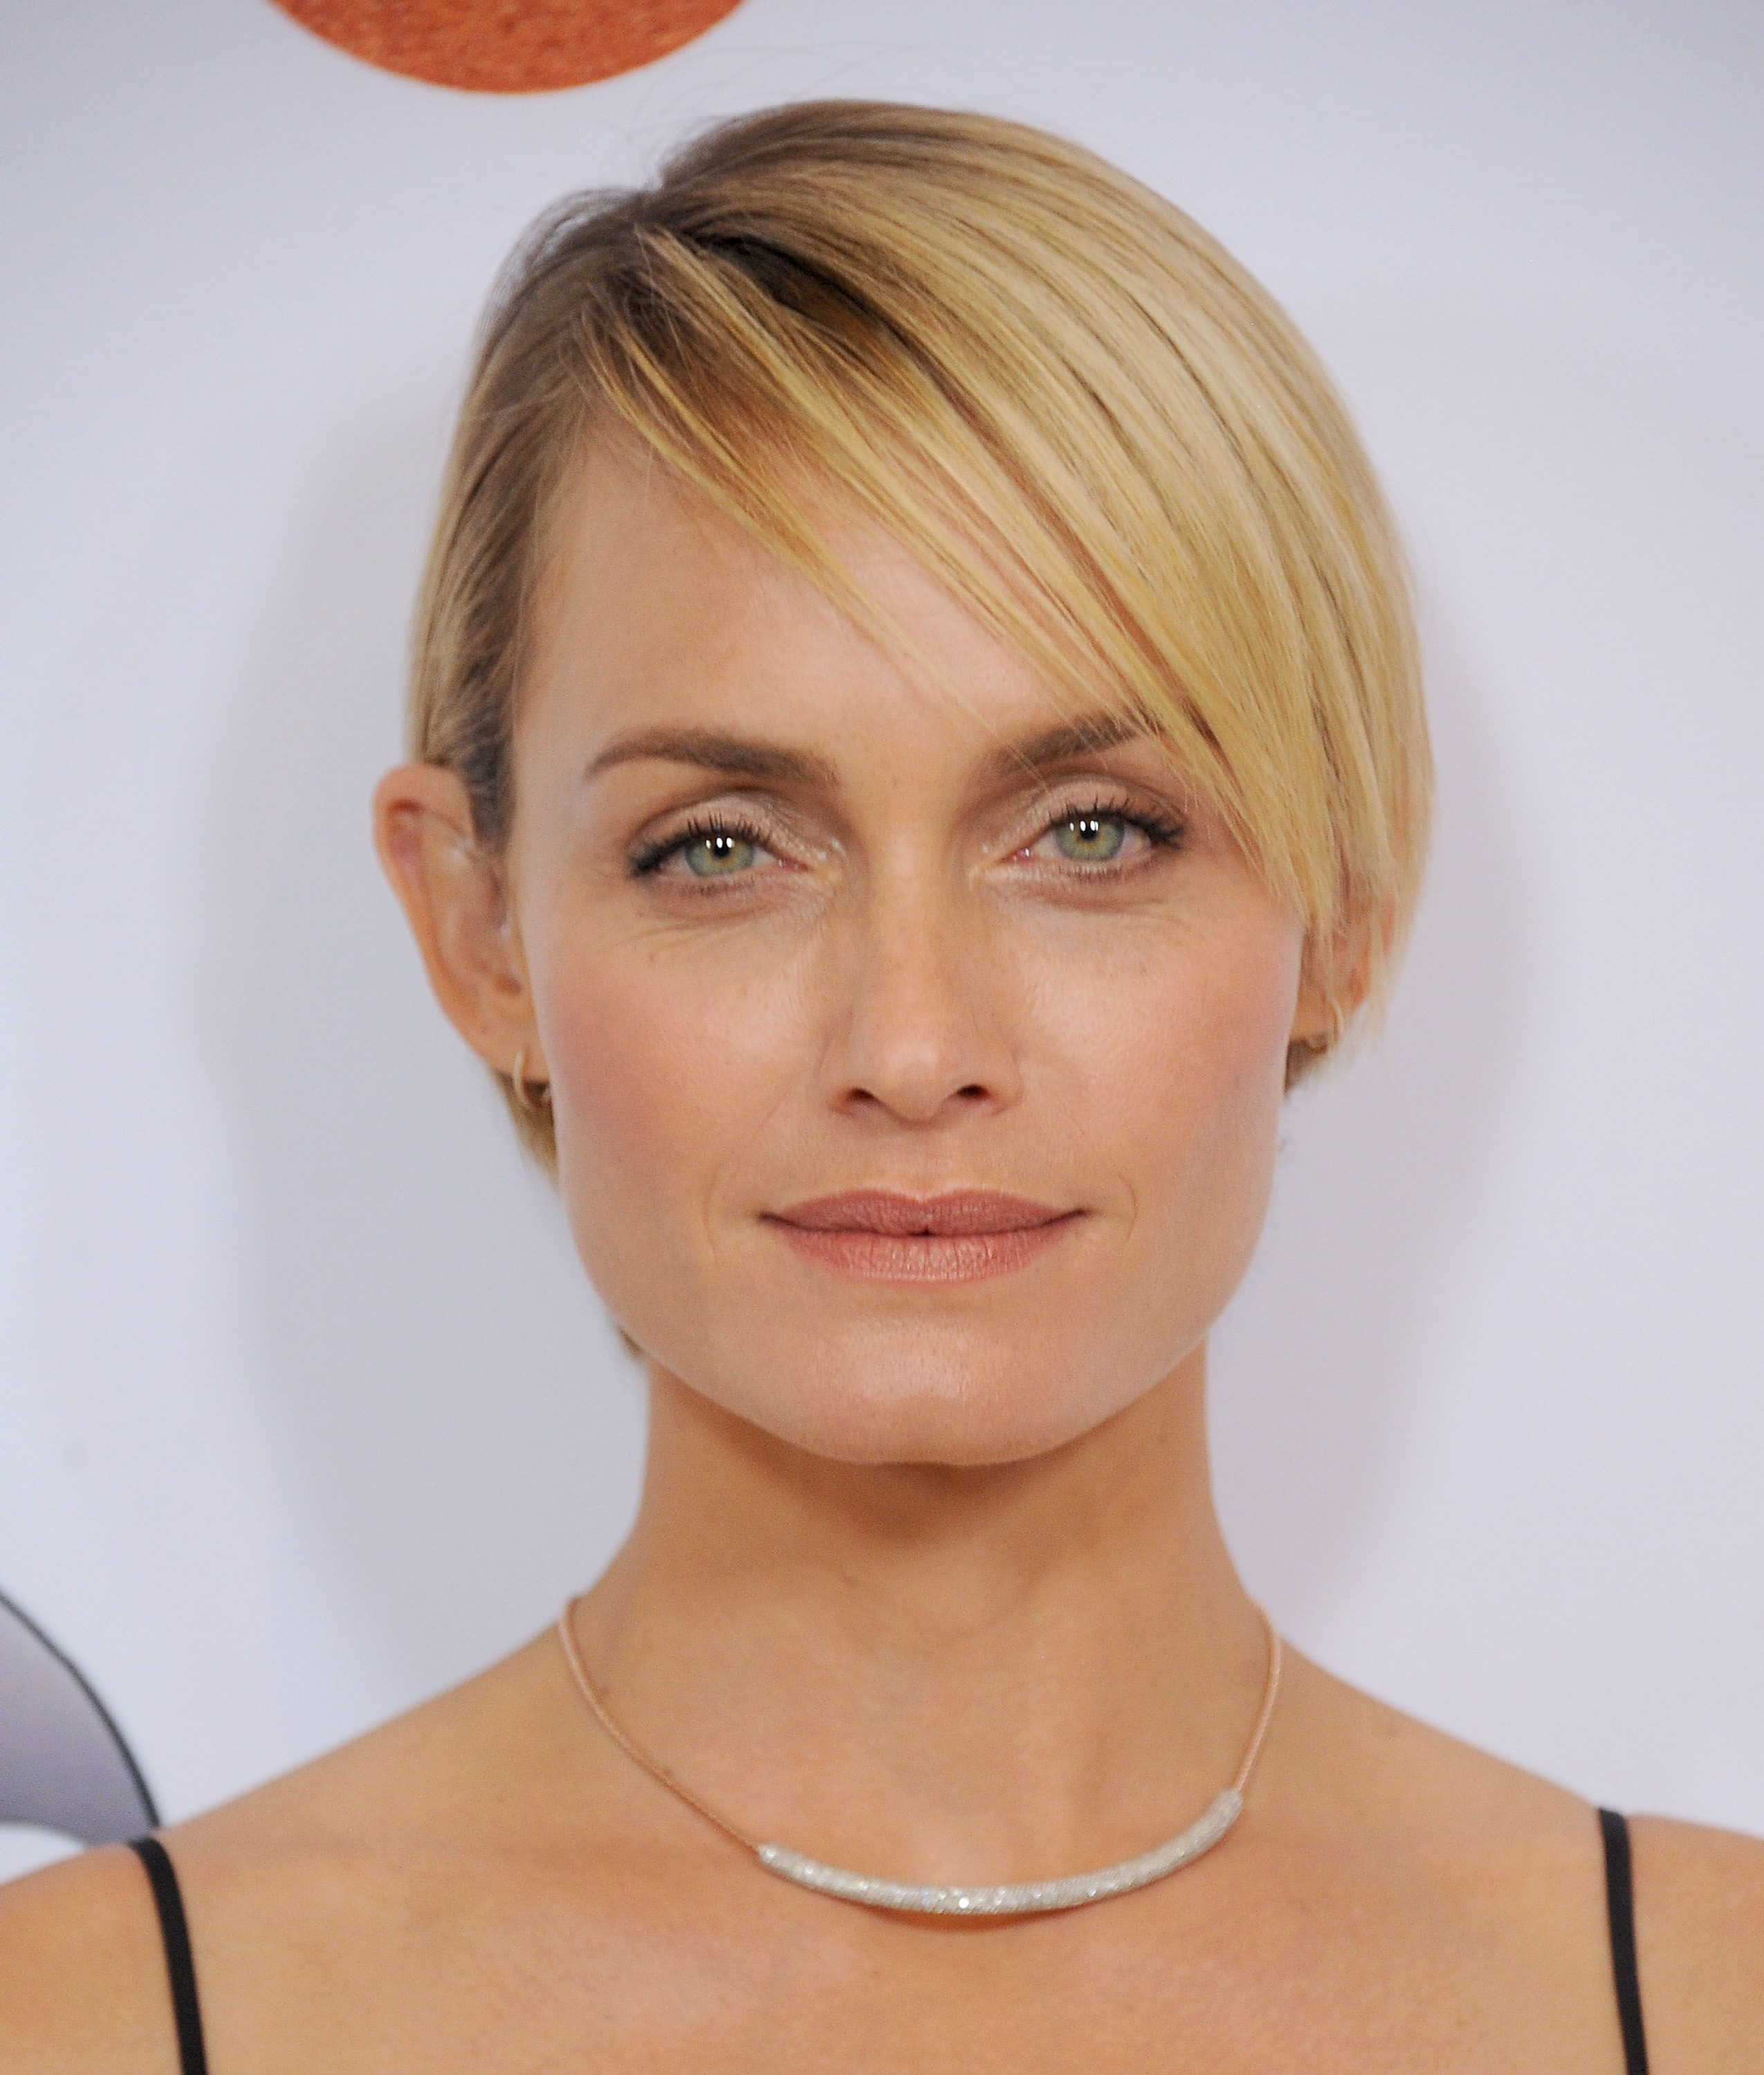 65 Best Short Hairstyles, Haircuts, And Short Hair Ideas For 2018 Intended For Cute Celebrity Short Haircuts (View 19 of 25)